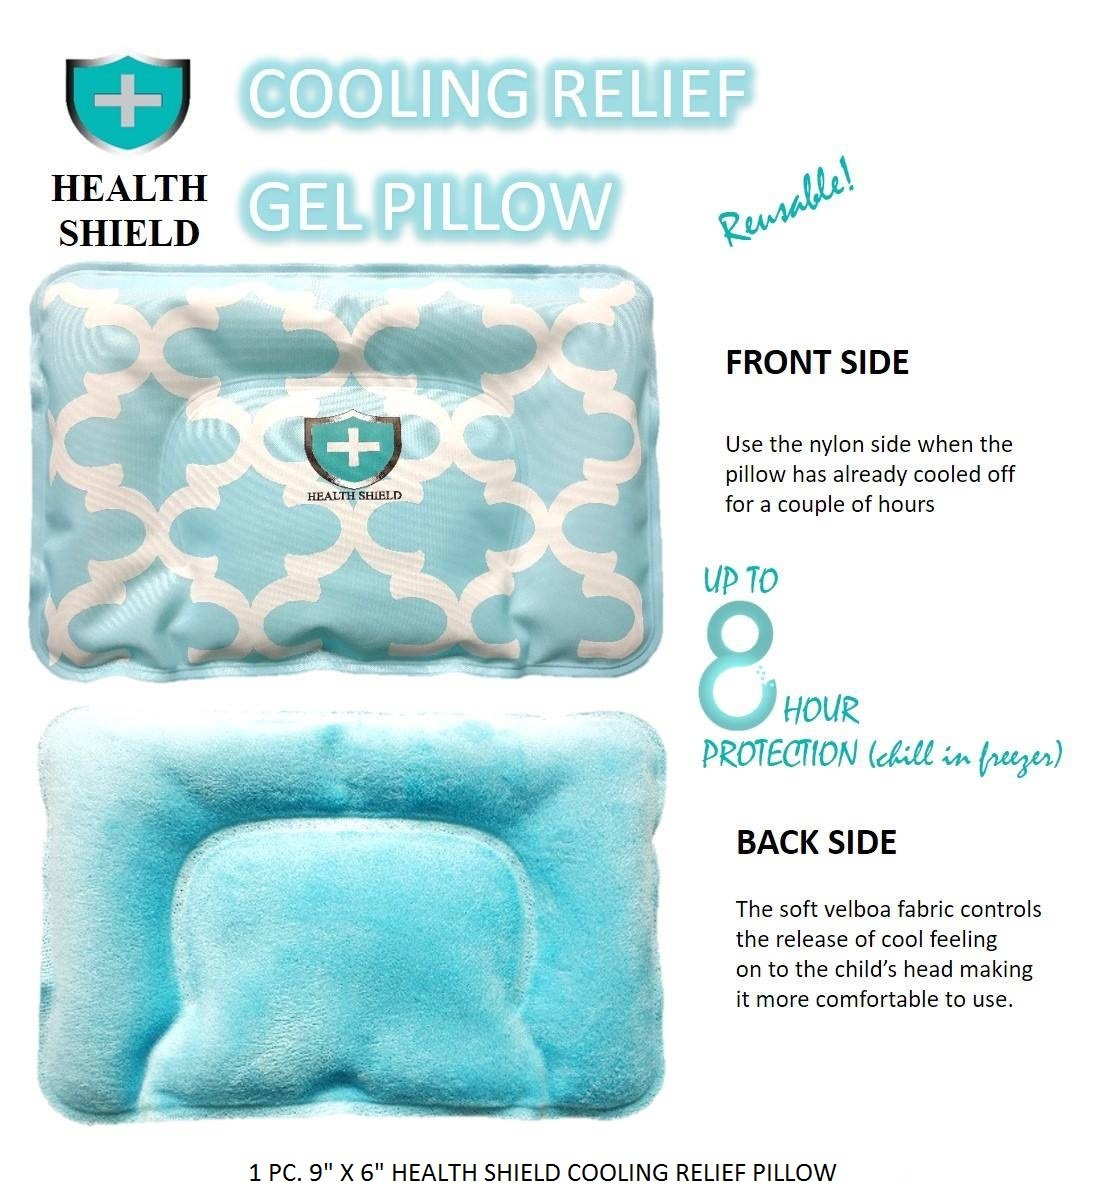 Health Shield Cooling Relief Pillow, Cold compress, For kids or babies, Ice pack, Reusable, Comfortable, Cold Therapy